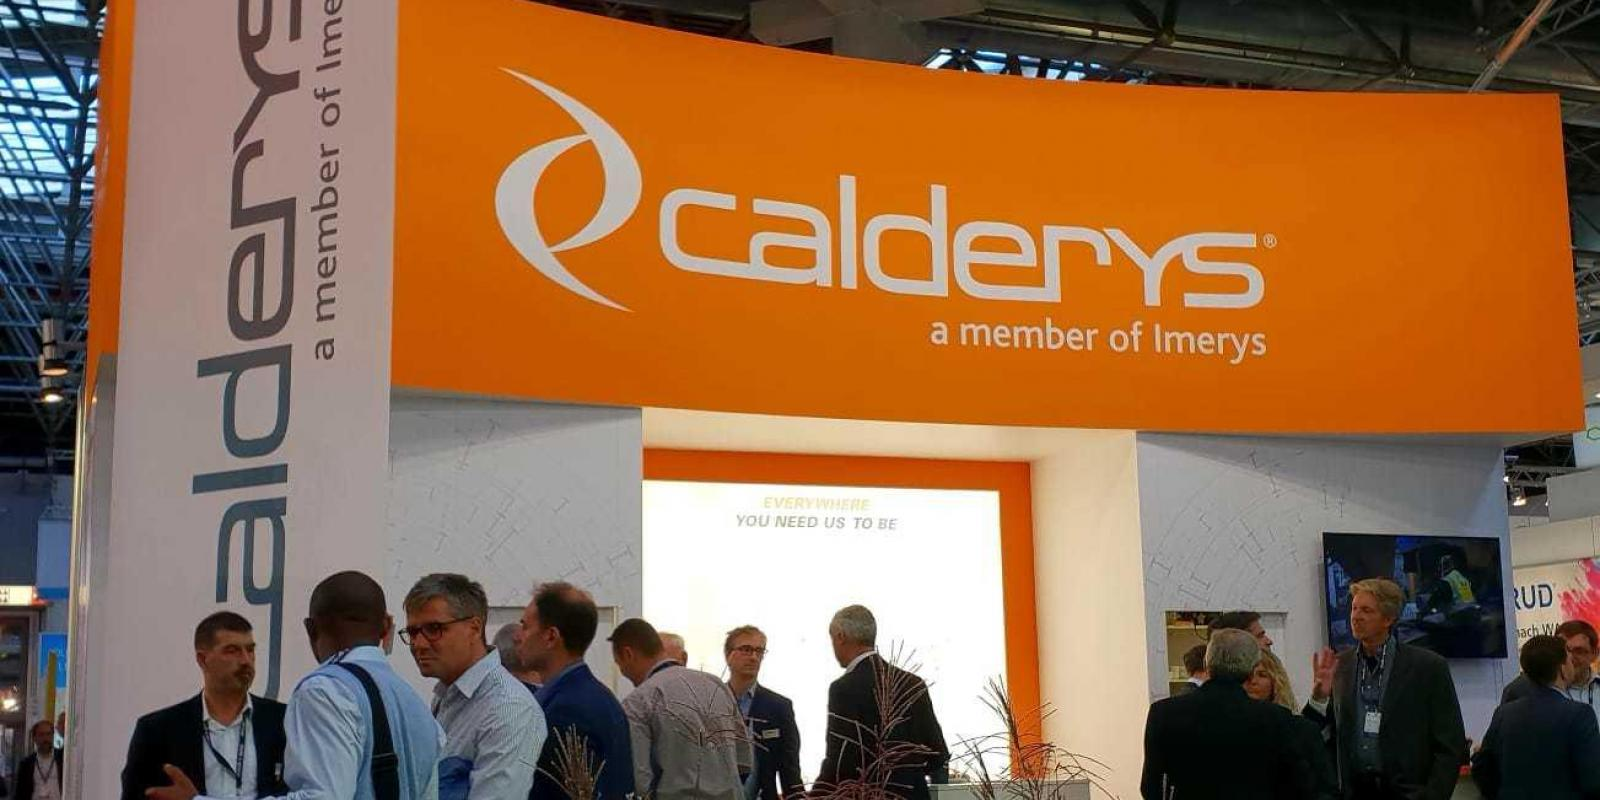 Calderys Germany at Aluminium 2018 show